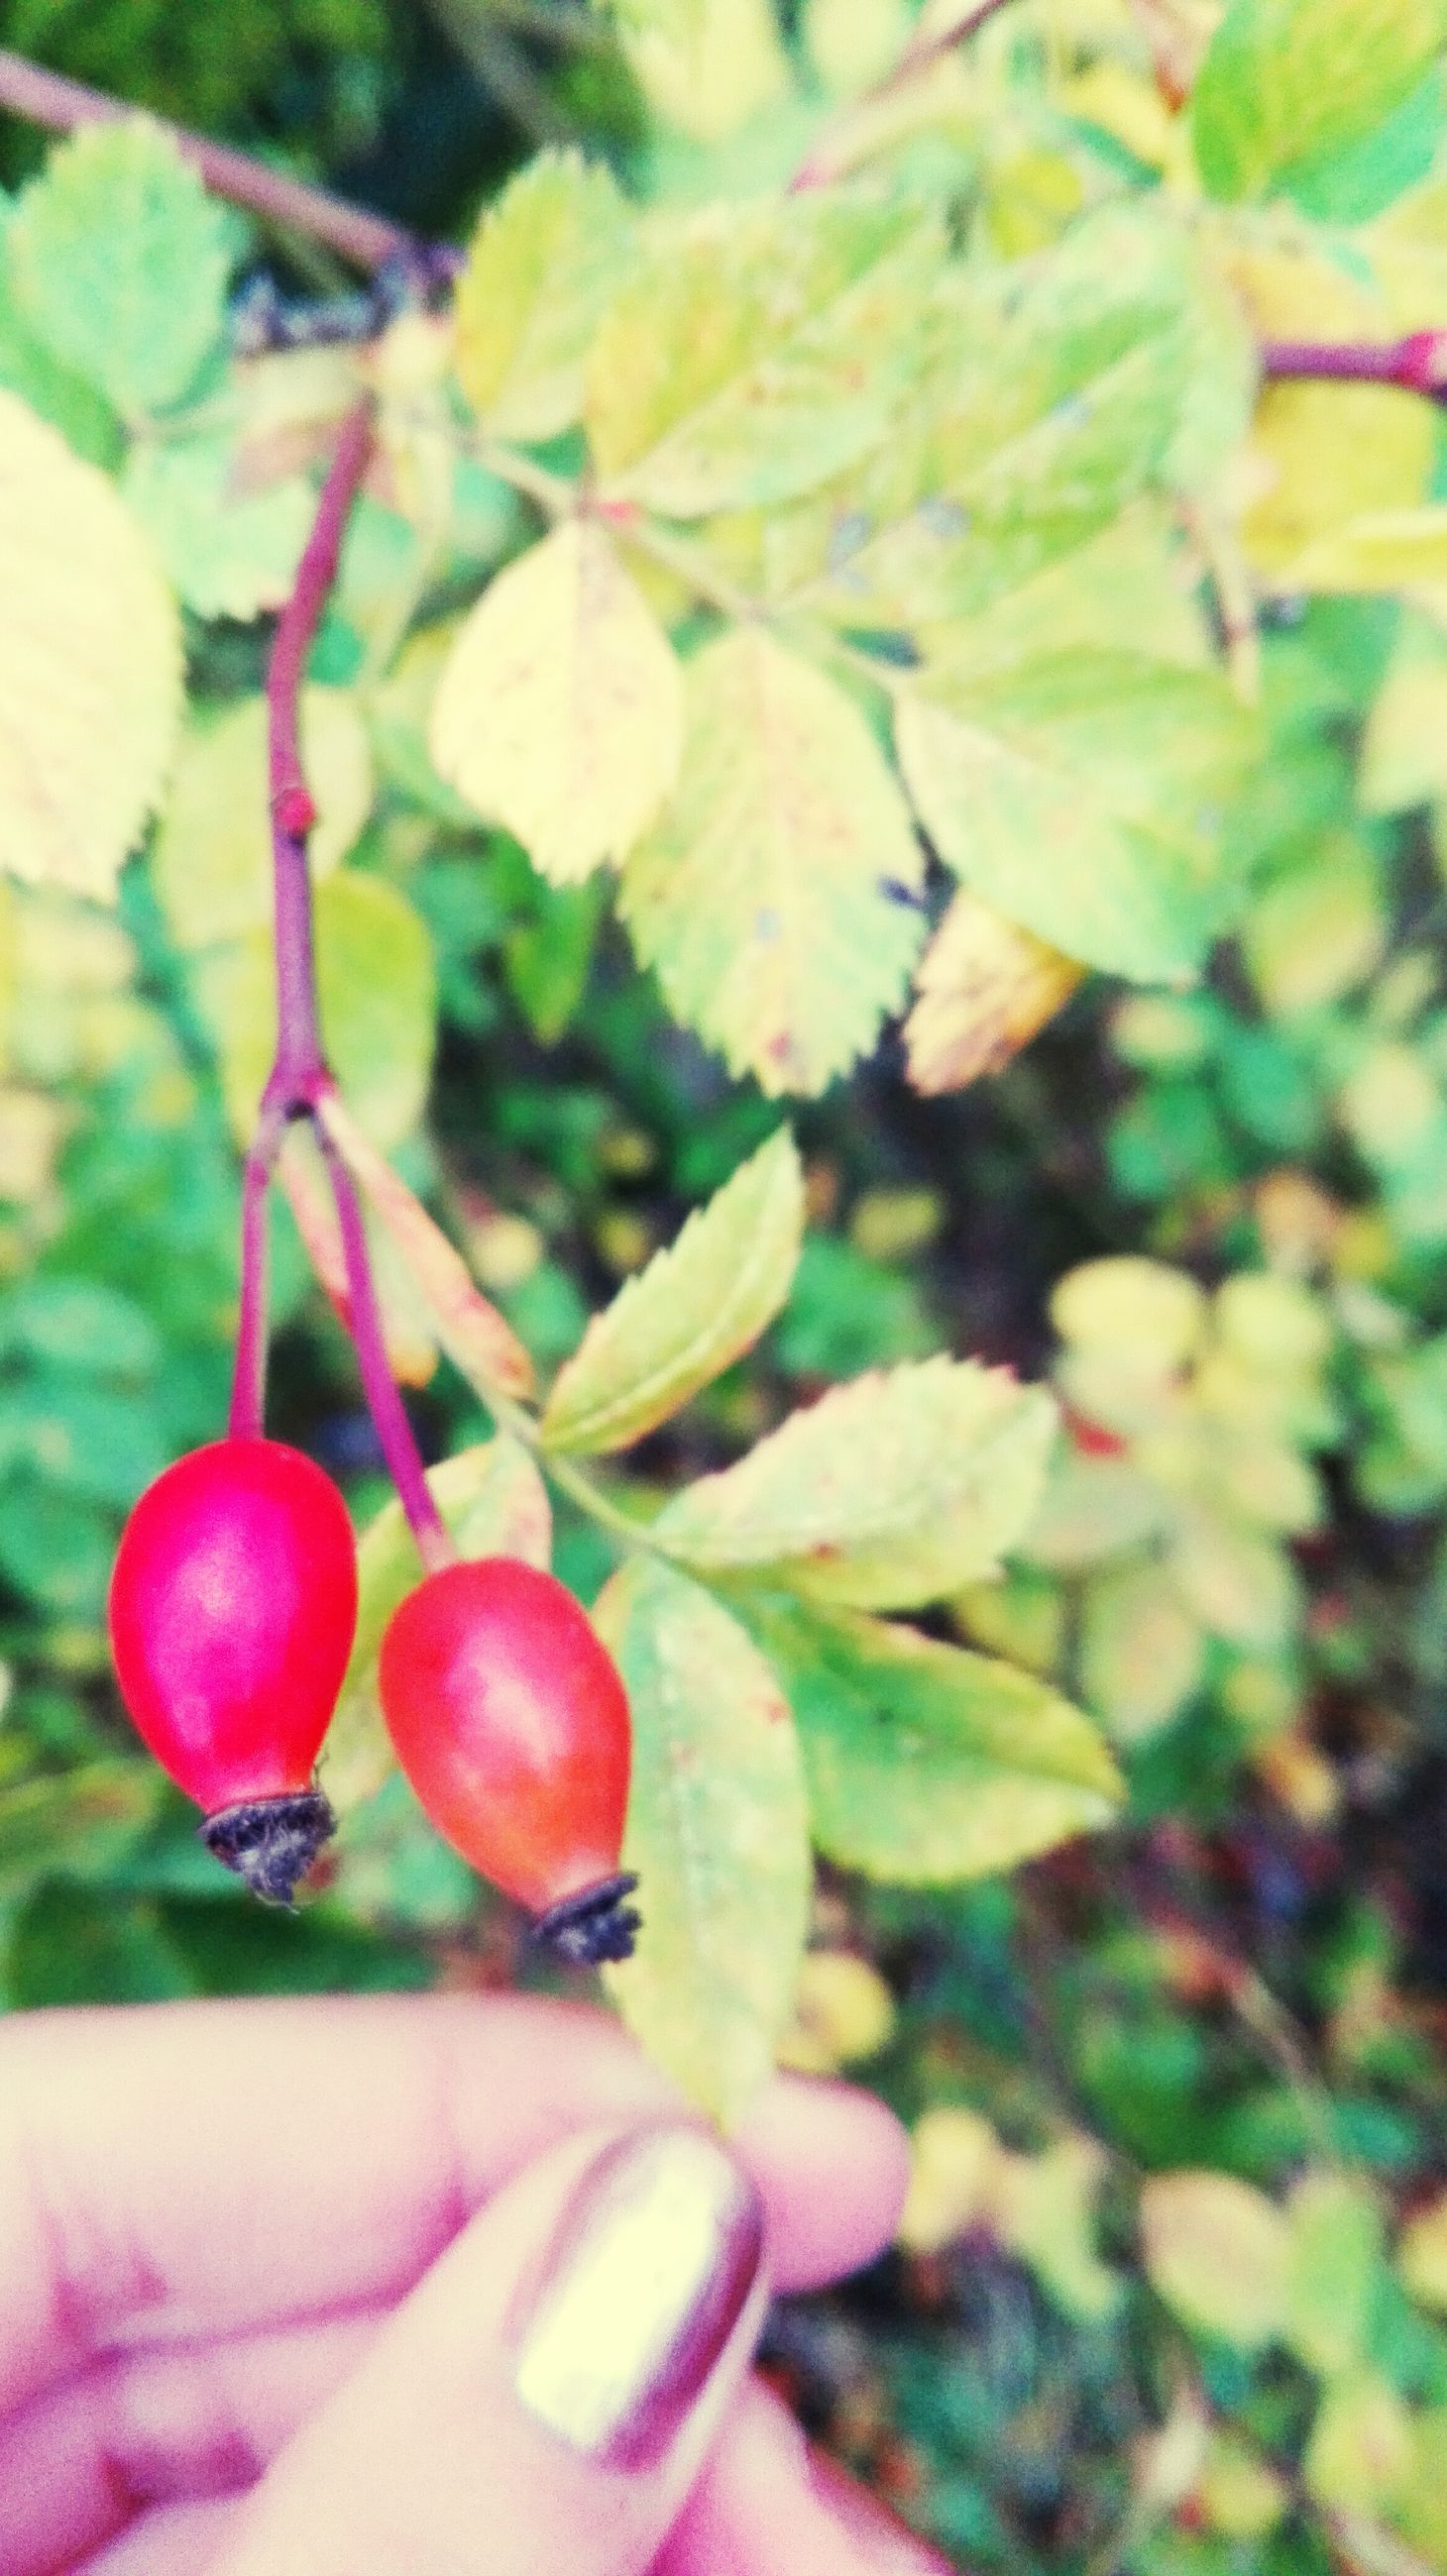 close-up, freshness, focus on foreground, leaf, fruit, growth, red, food and drink, selective focus, plant, nature, branch, stem, healthy eating, hanging, food, berry fruit, day, twig, beauty in nature